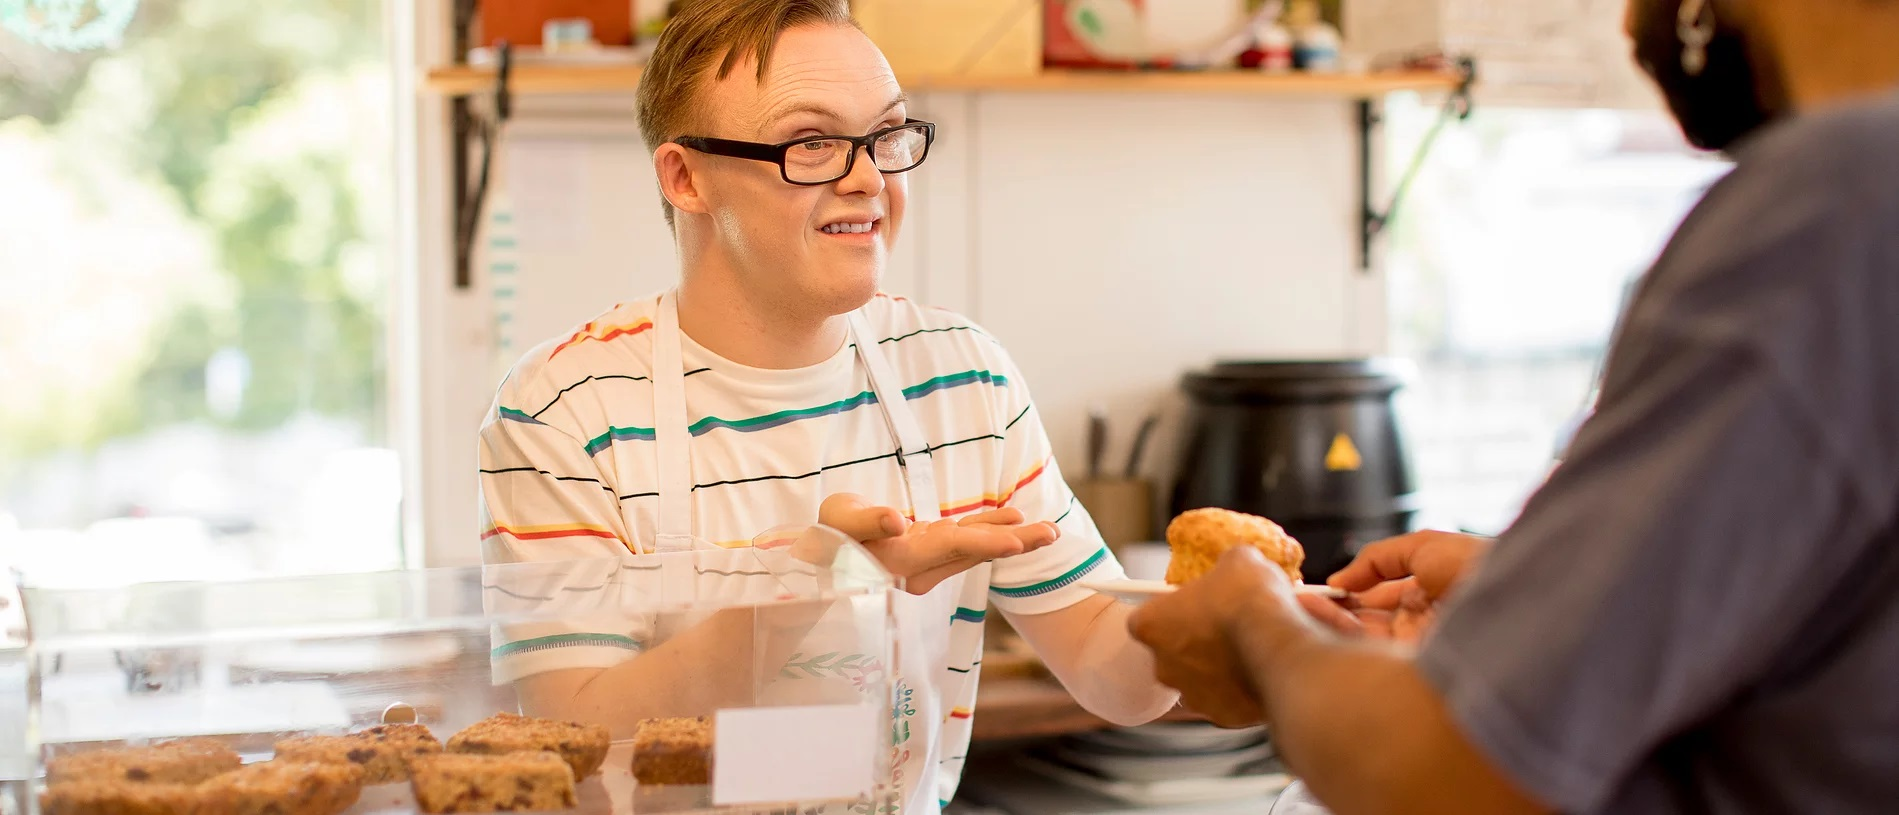 Nua's Supported Living Service provides home and community-based care to both children and adults with varying needs.